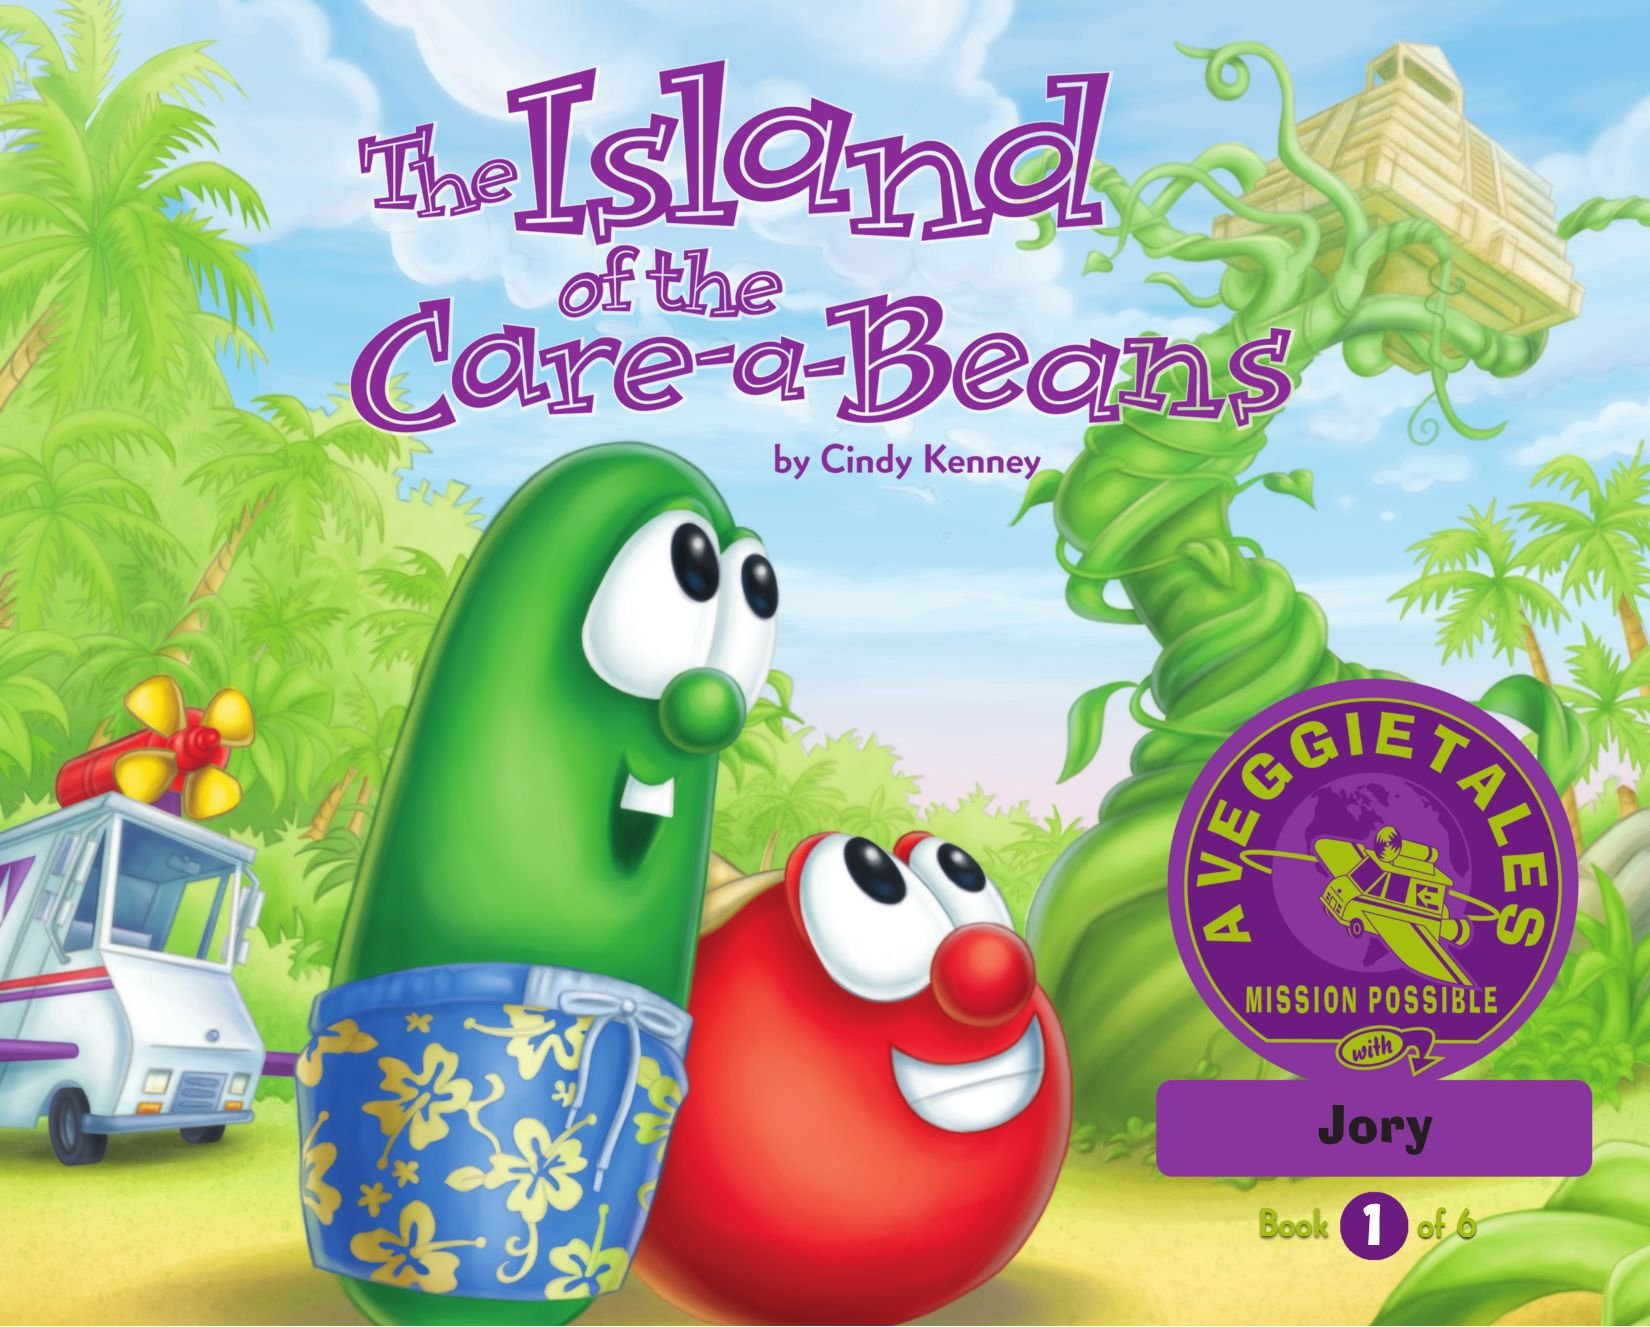 Download The Island of the Care-a-Beans - VeggieTales Mission Possible Adventure Series #1: Personalized for Jory (Boy) pdf epub